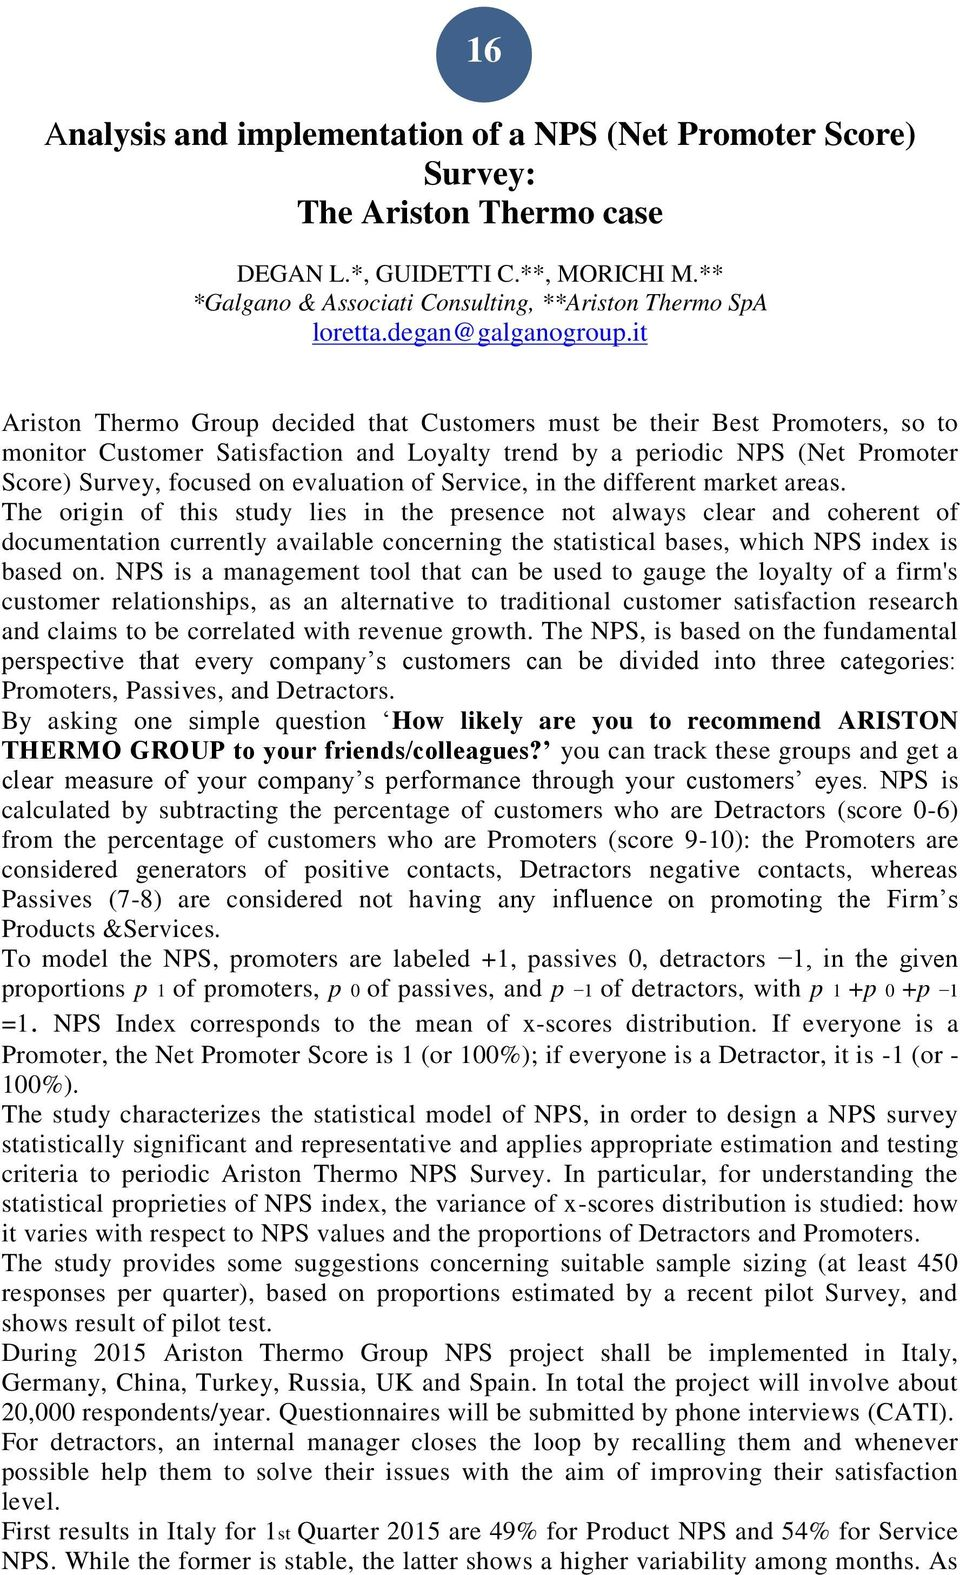 it Ariston Thermo Group decided that Customers must be their Best Promoters, so to monitor Customer Satisfaction and Loyalty trend by a periodic NPS (Net Promoter Score) Survey, focused on evaluation